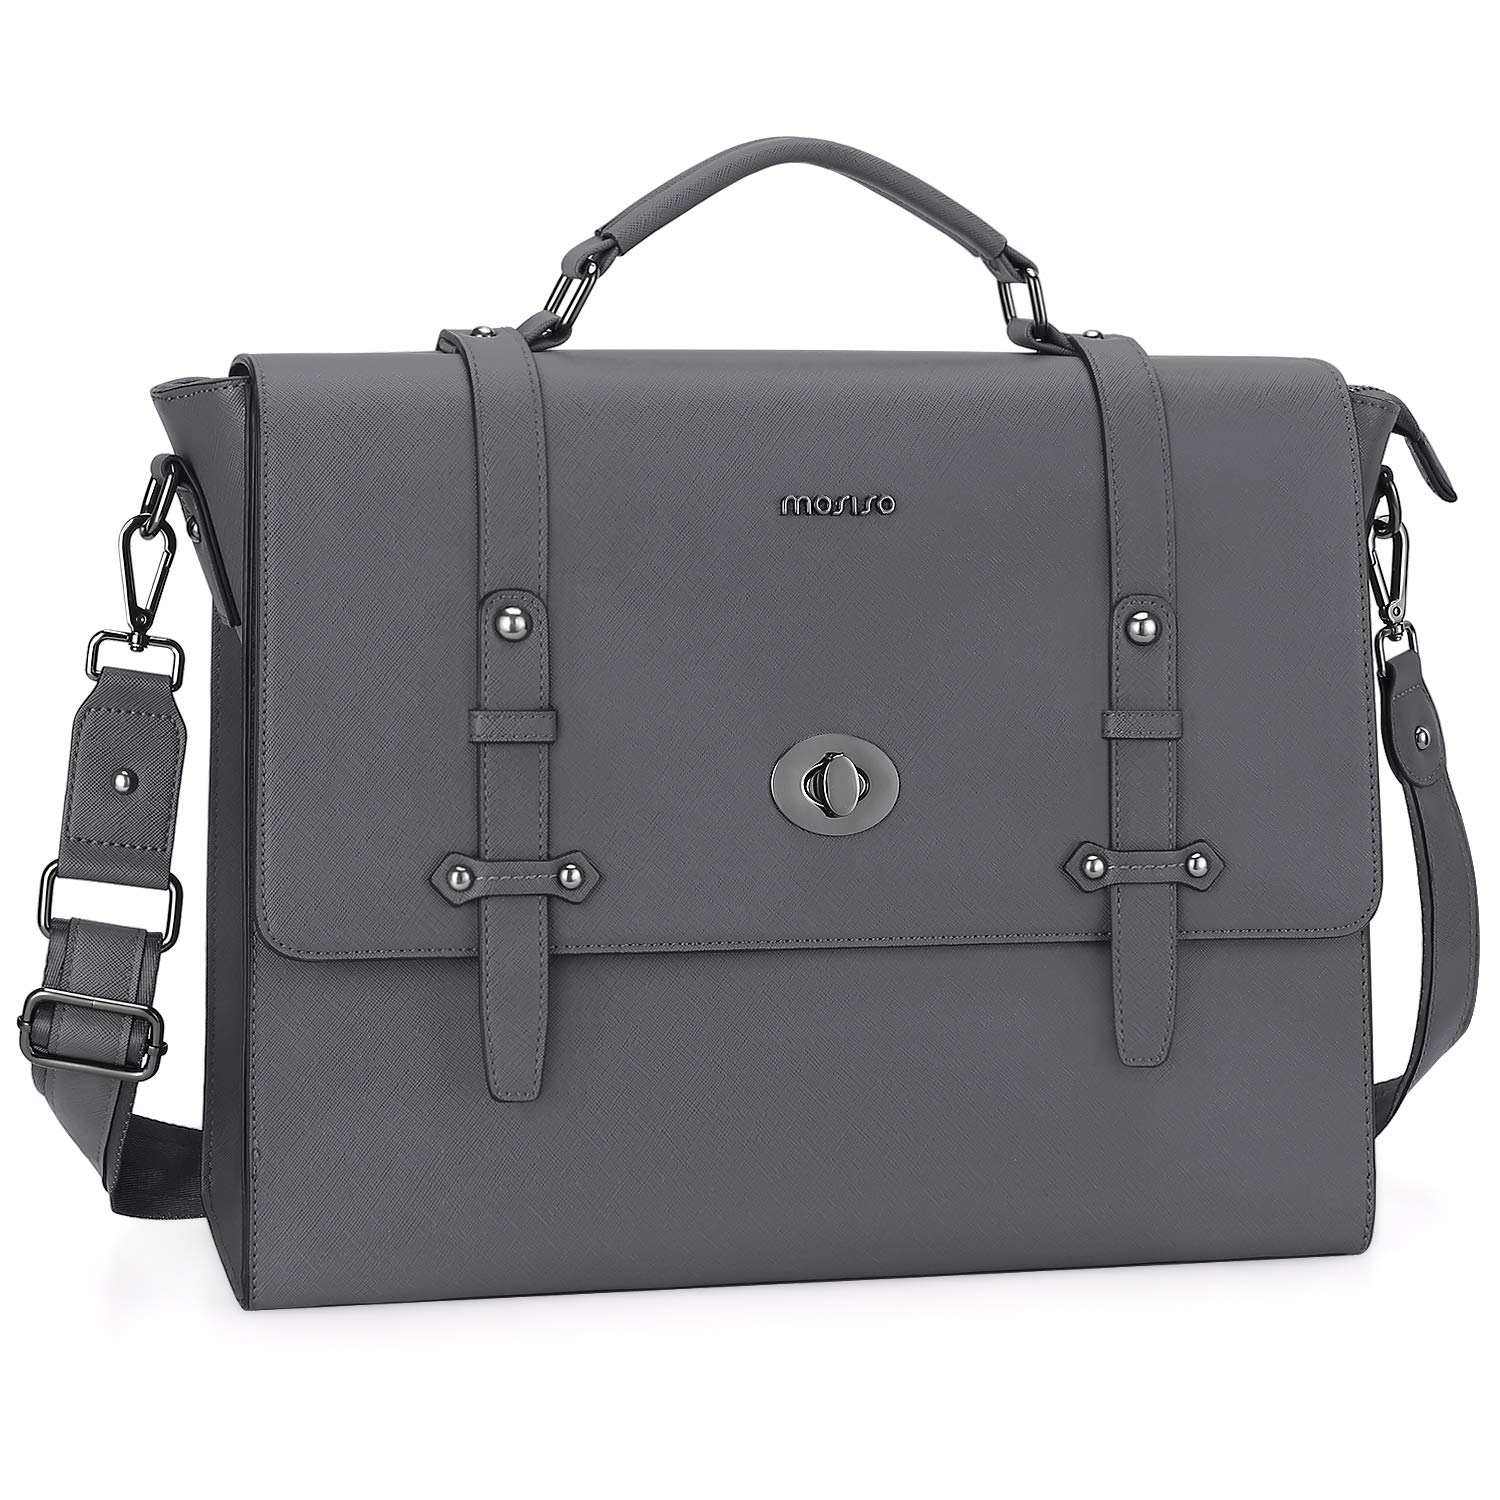 MOSISO 15.6 inch Laptop Messenger Shoulder Bag, Business Office Bag for Men Women, Water Resistant Premium PU Leather Carrying Briefcase with Middle Button Compatible with MacBook&Notebook, Space Gray